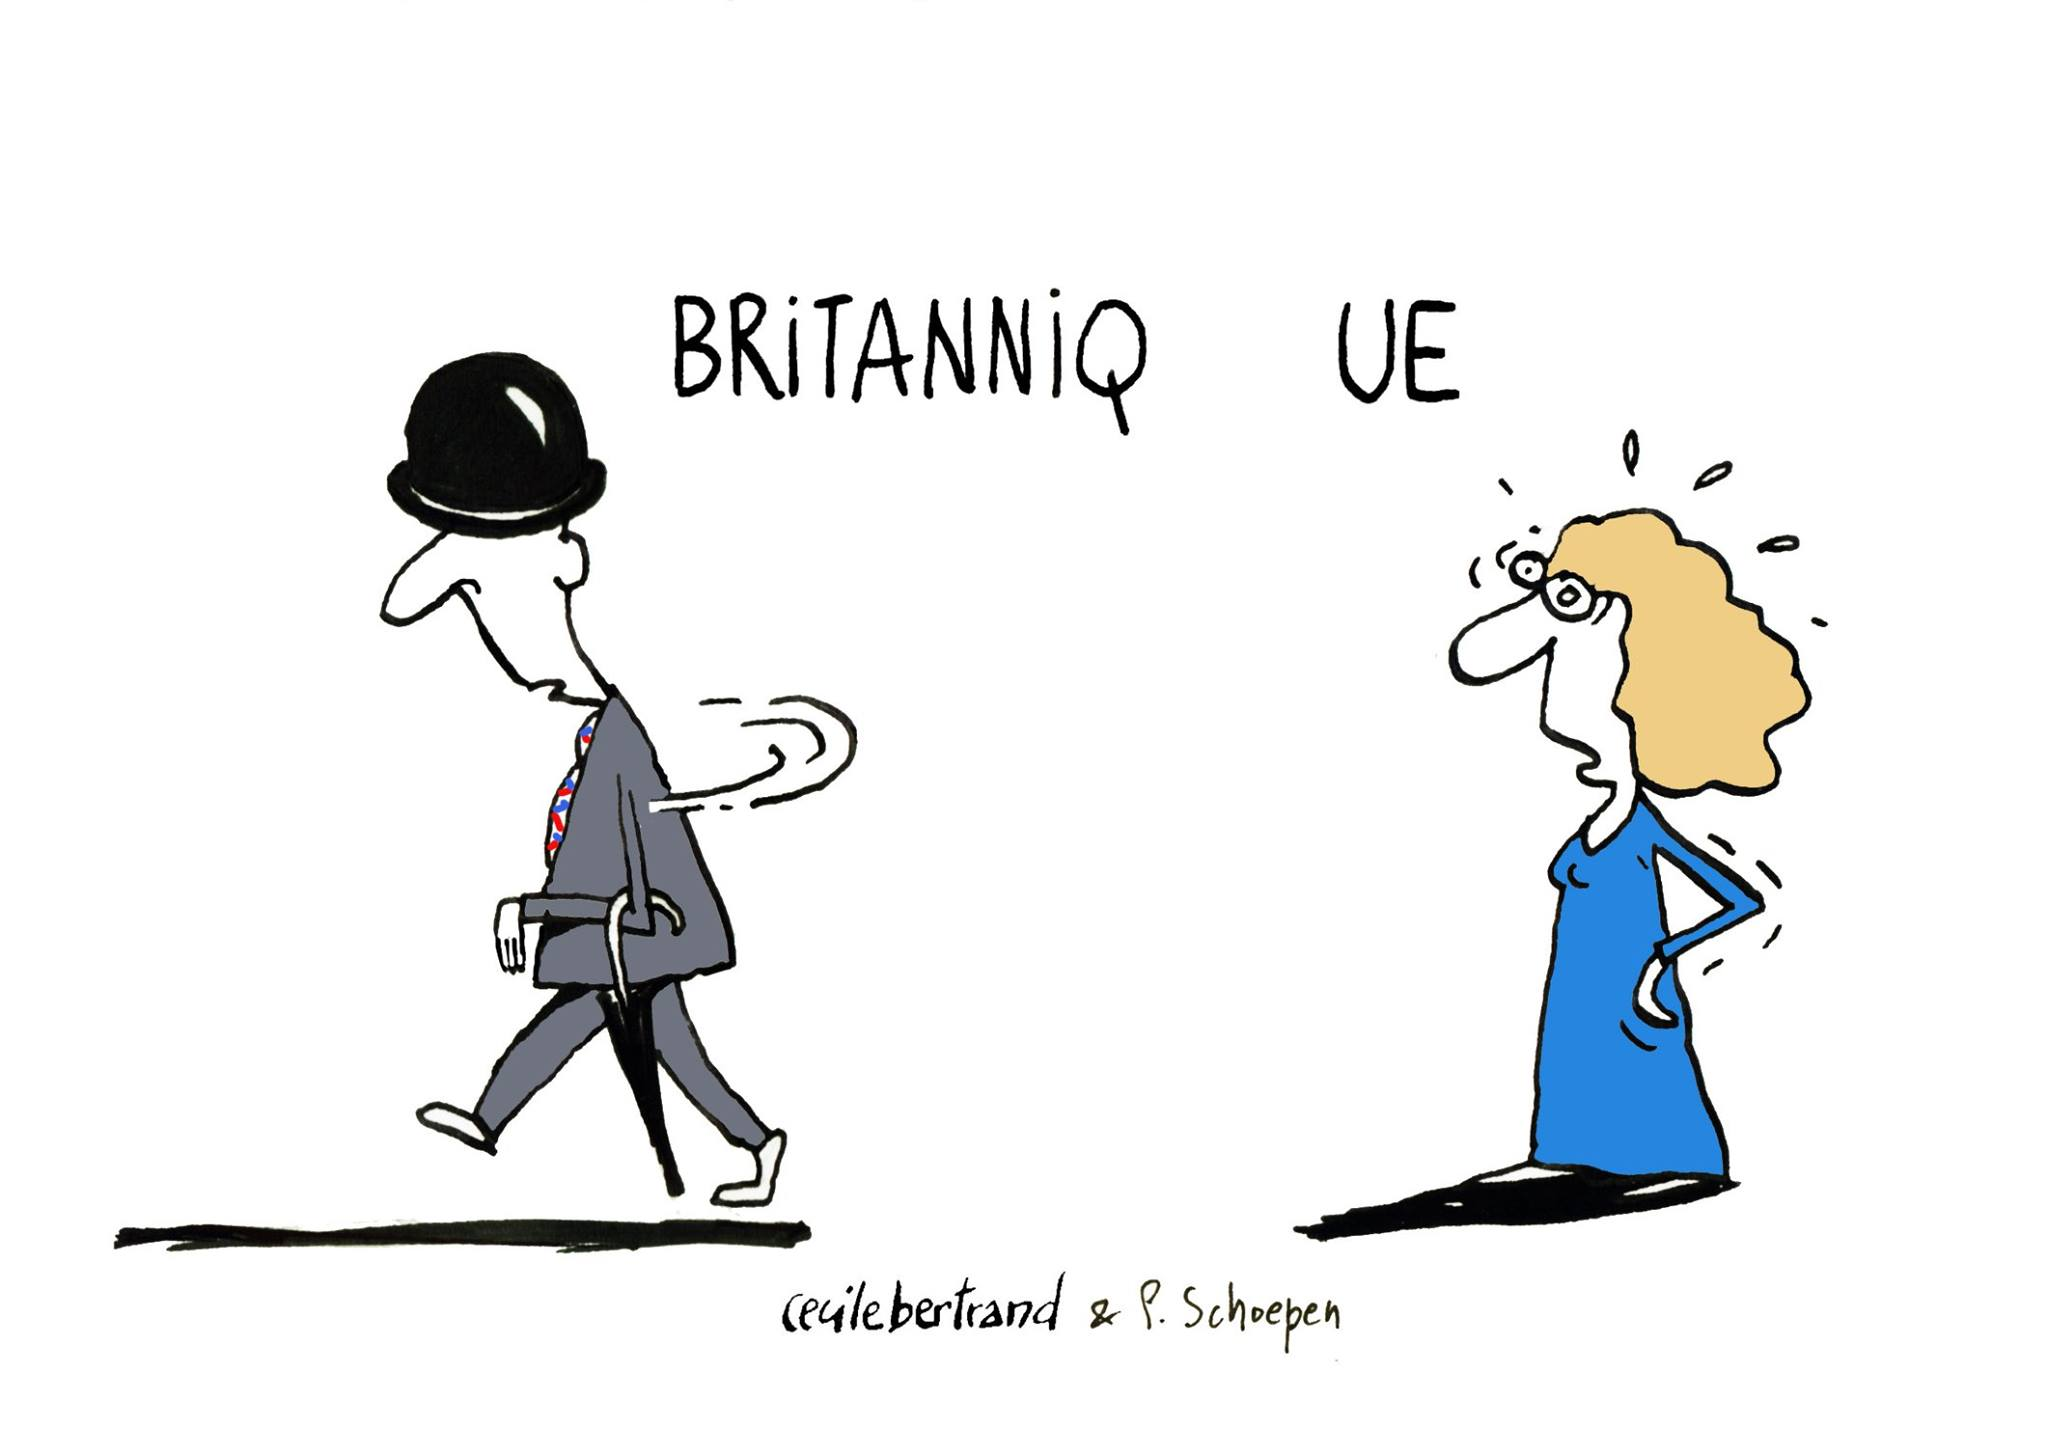 cecile_bertrand_brexit_cartoon_dkp